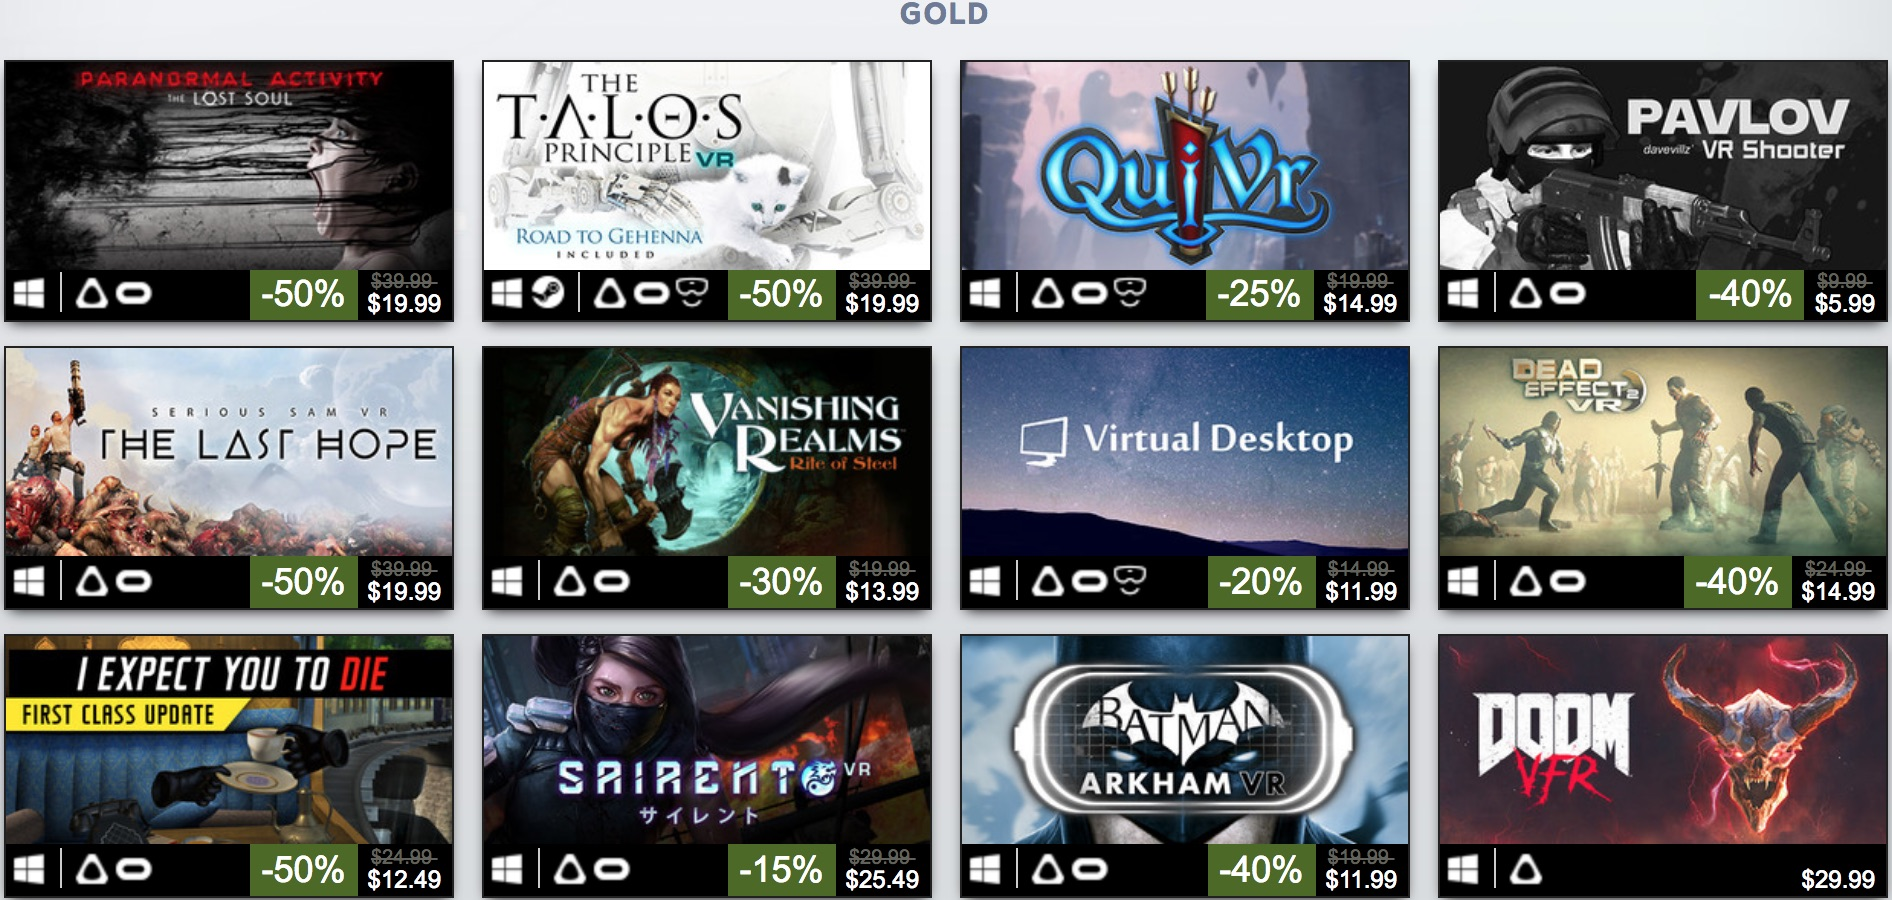 gold vr games on steam